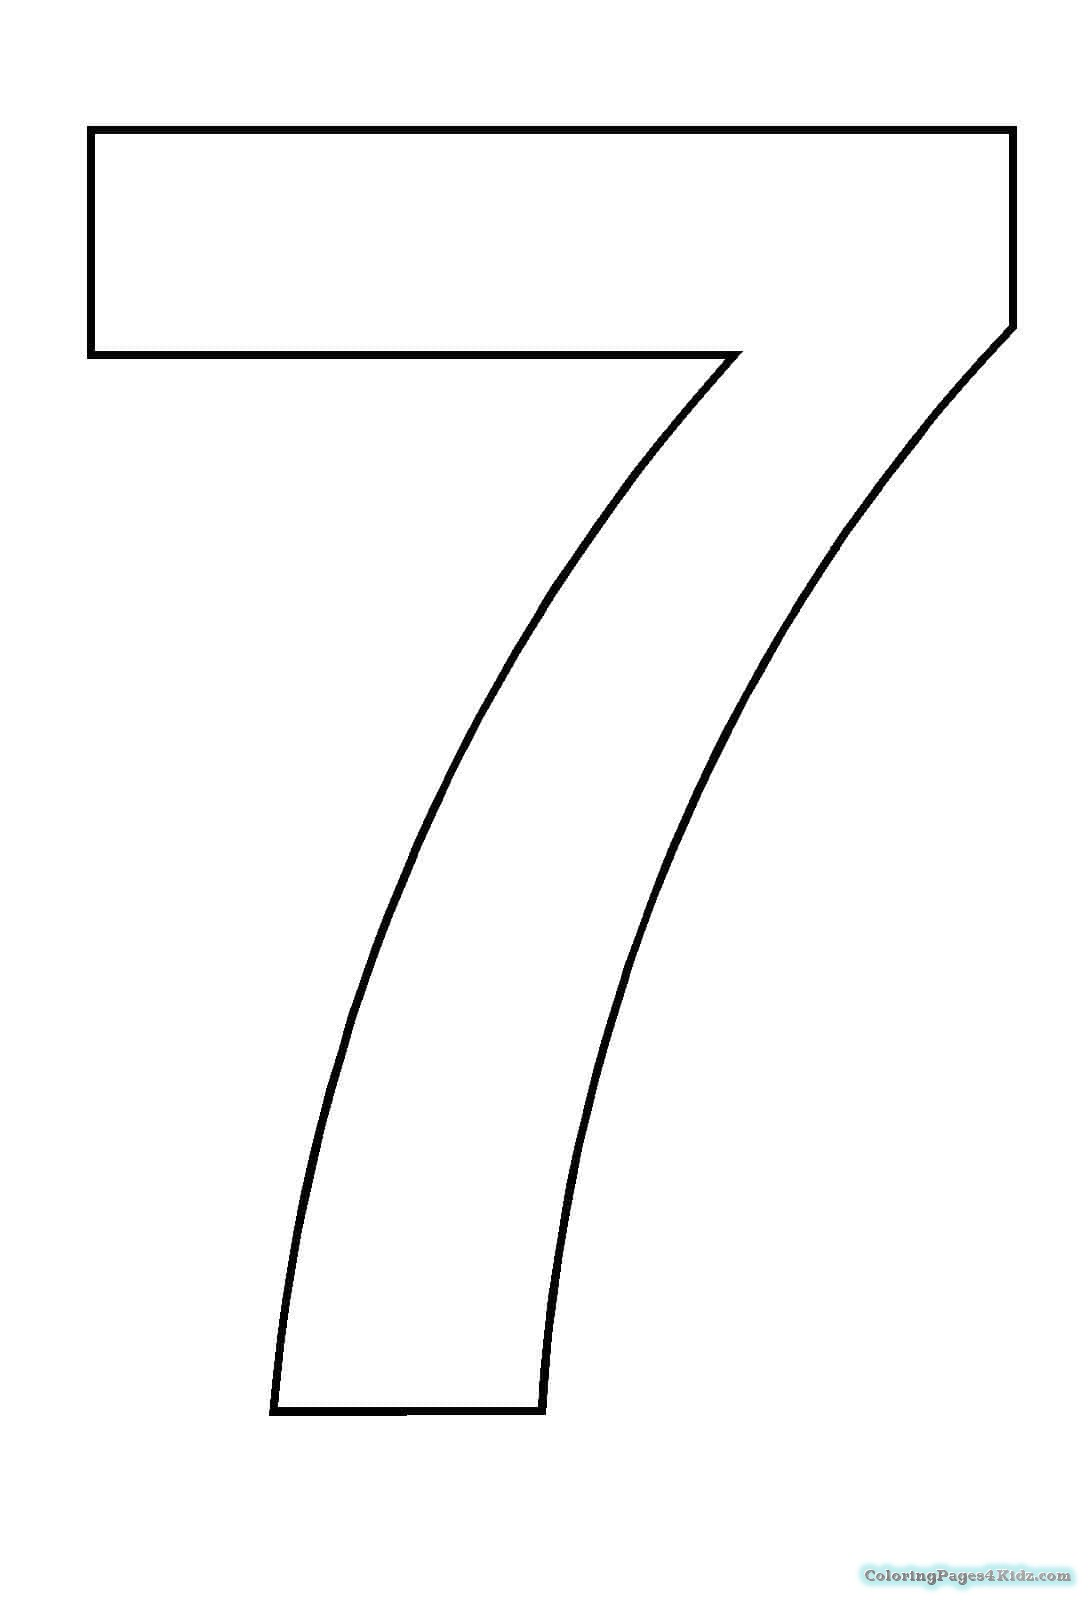 colouring picture of number 7 coloring pages of number 7 coloring pages 7 picture colouring number of